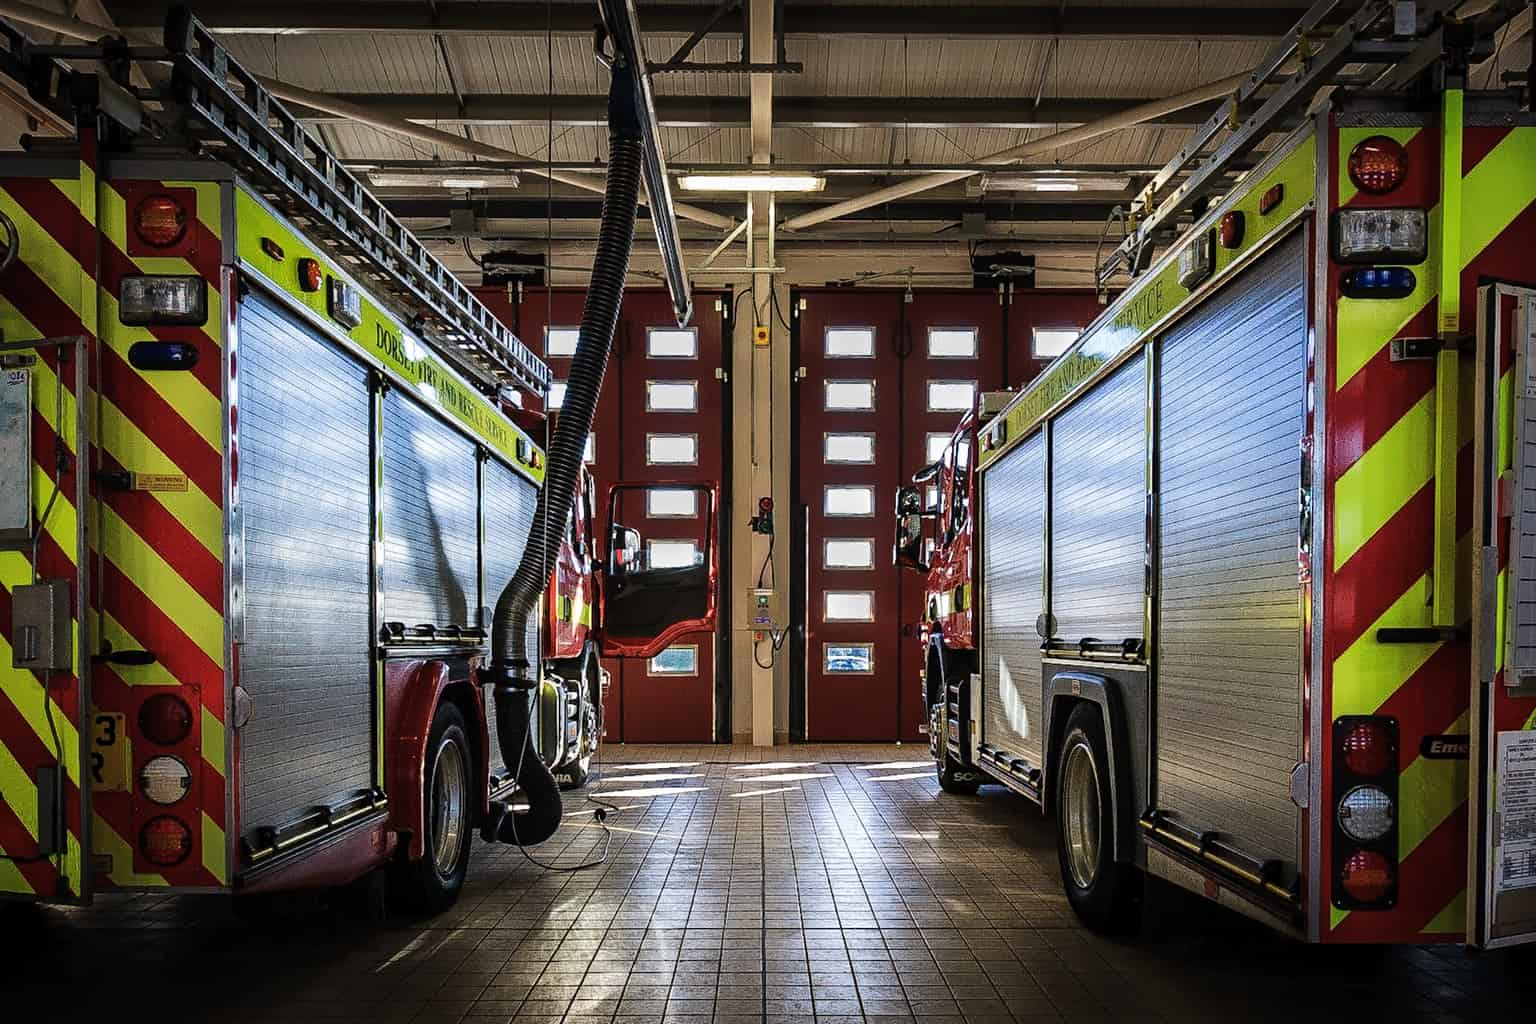 The appliance bay at Dorchester Fire Station by interior photographer Rick mcEvoy